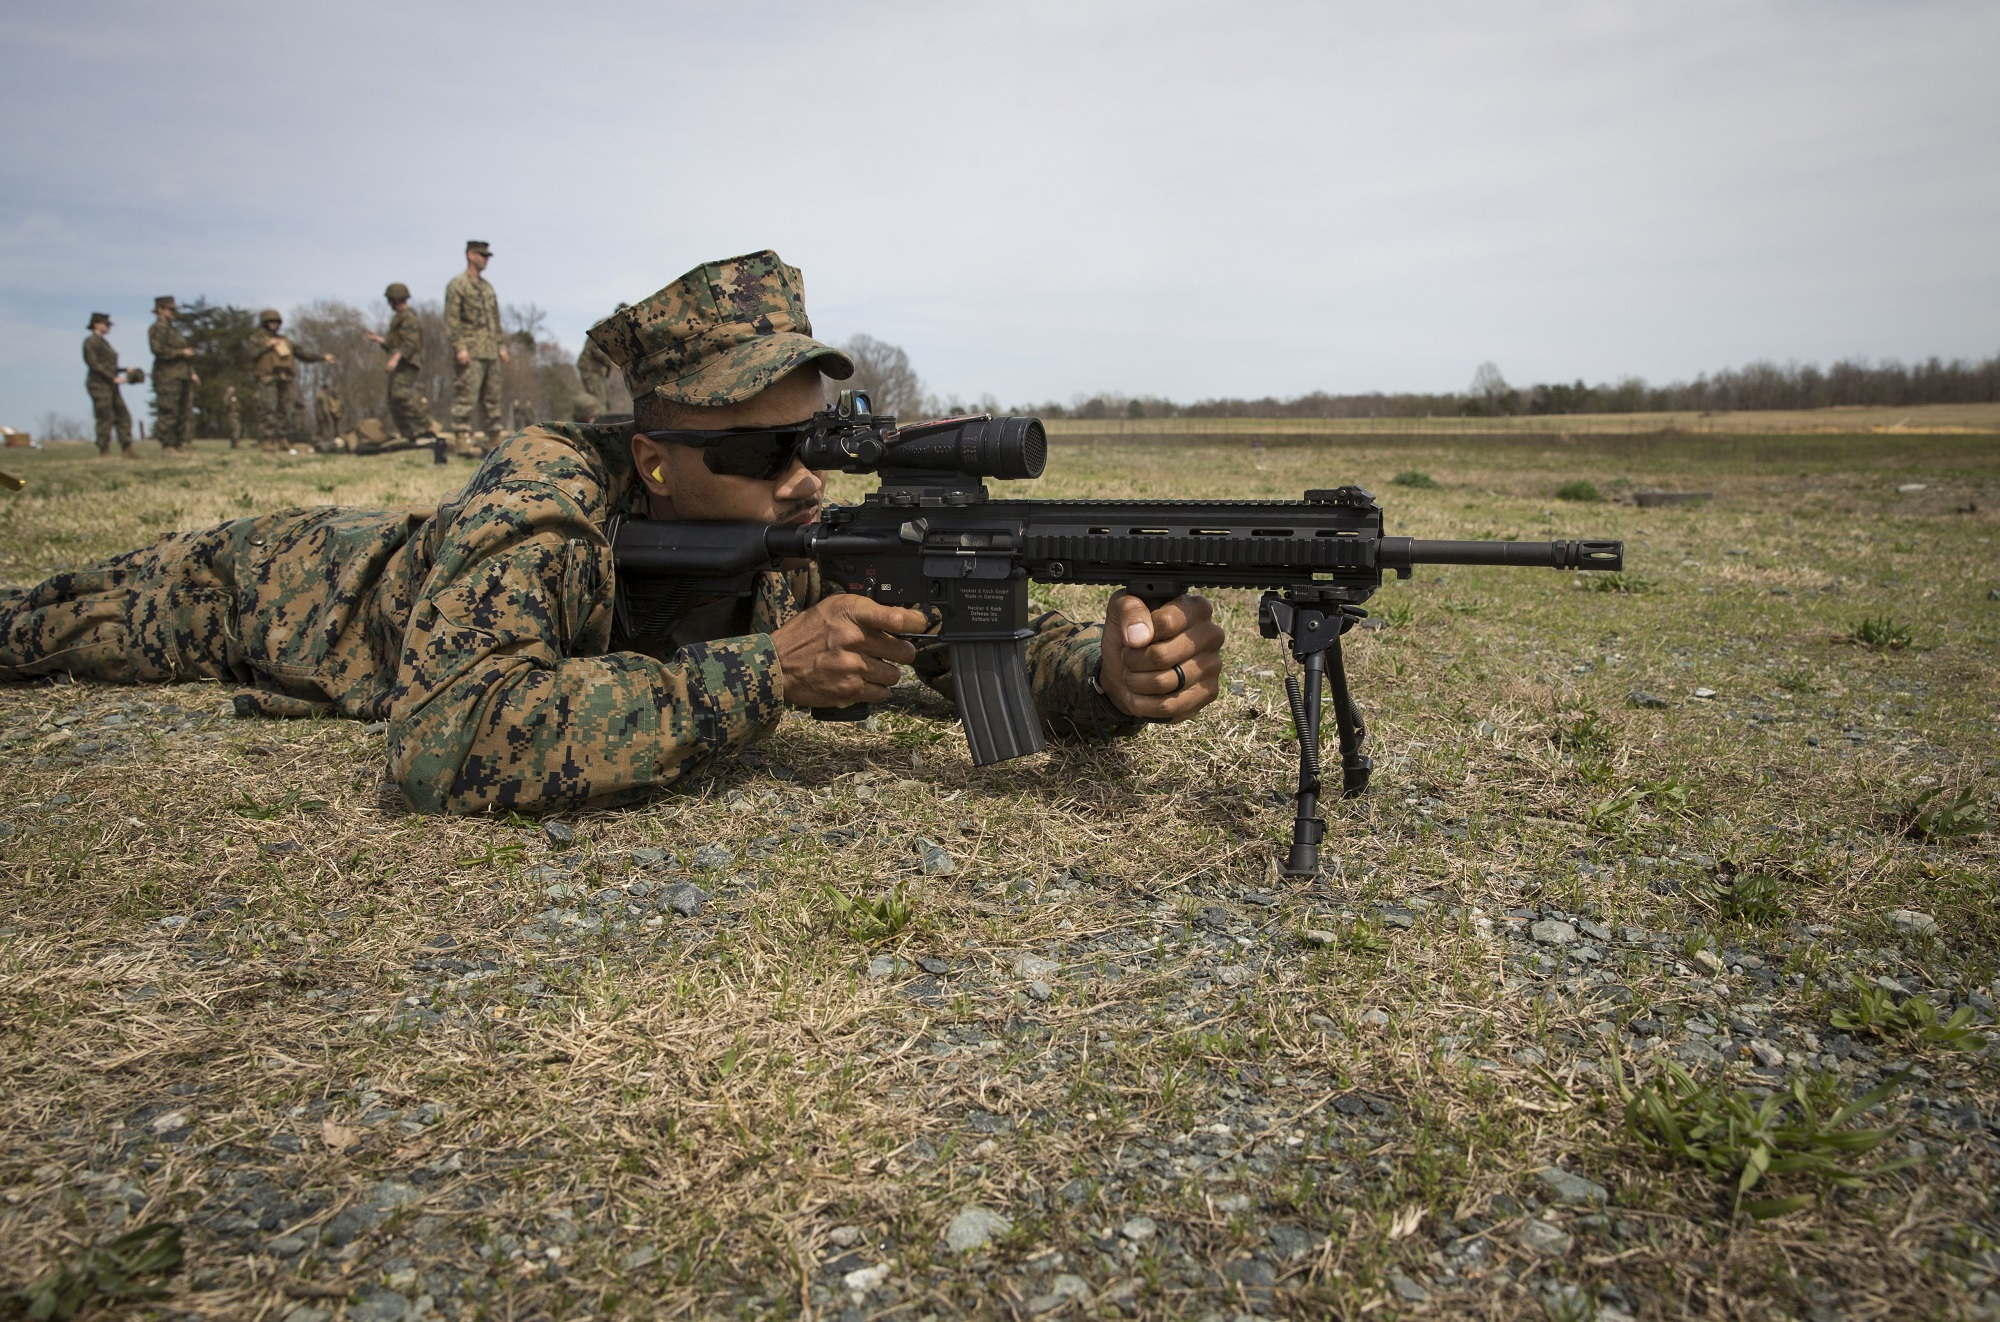 Marines want 11,000 Infantry Automatic Rifles to replace M4 in every infantry squad